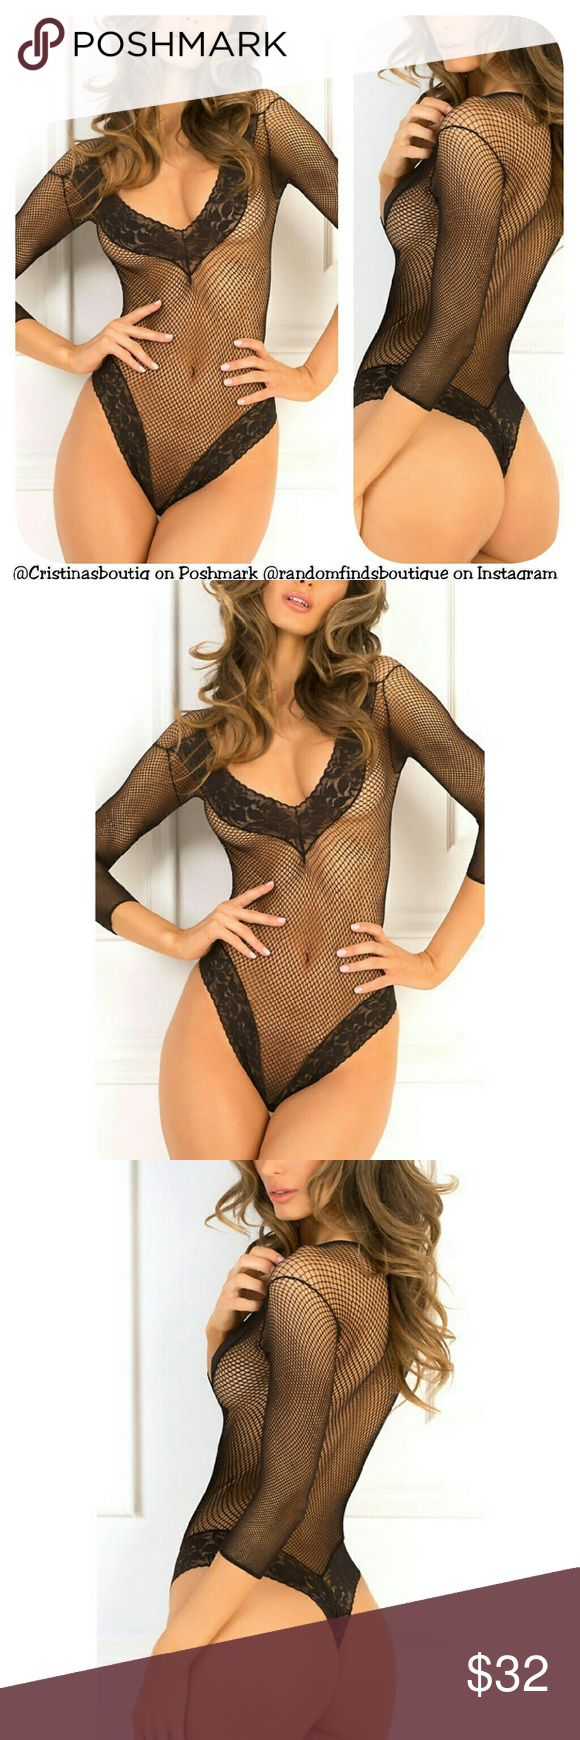 Black fishnet bodystocking bodysuit linjerie 100% NYLON Size: M/L Random Finds Boutique  Intimates & Sleepwear Shapewear